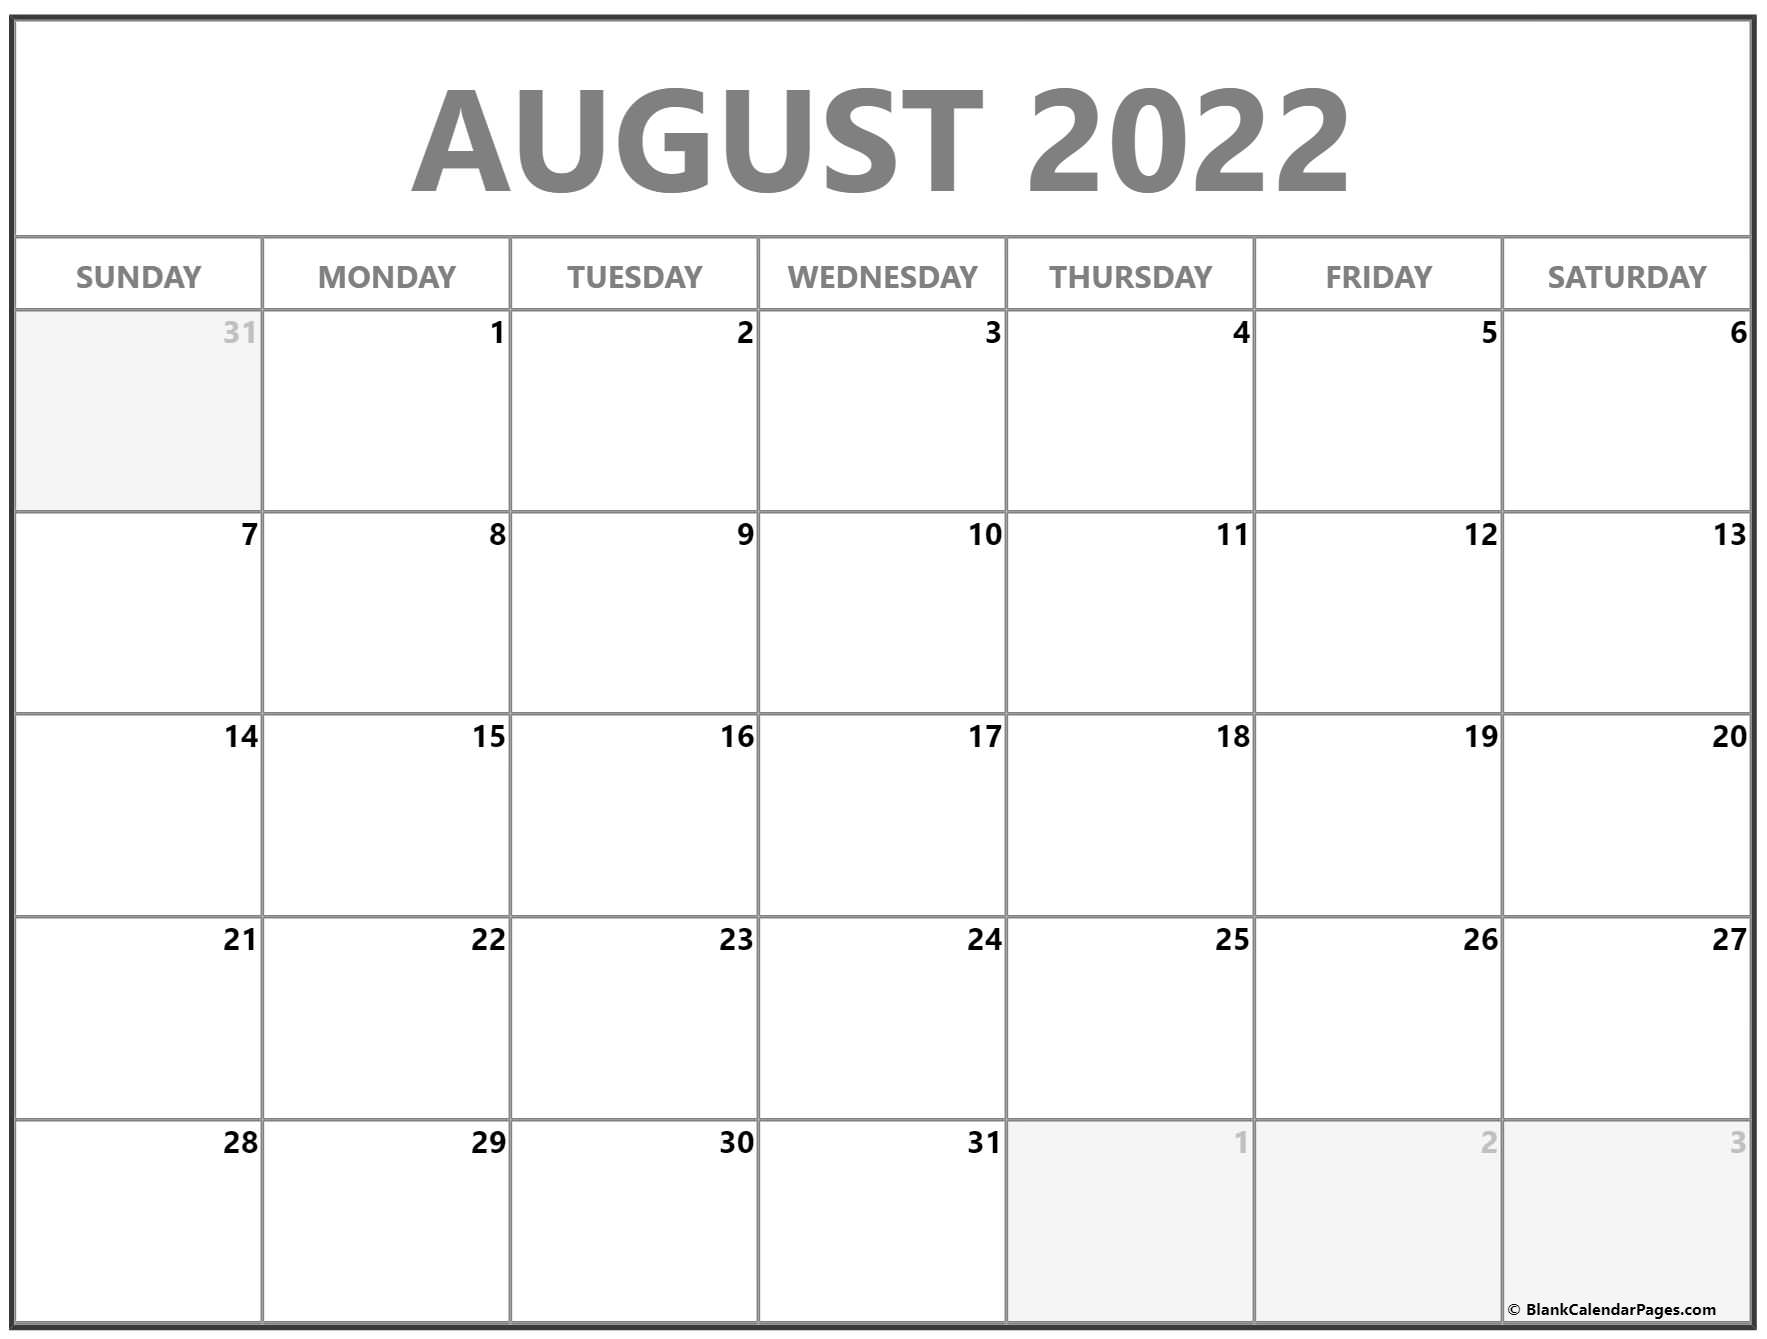 August 2022 calendar | free printable monthly calendars